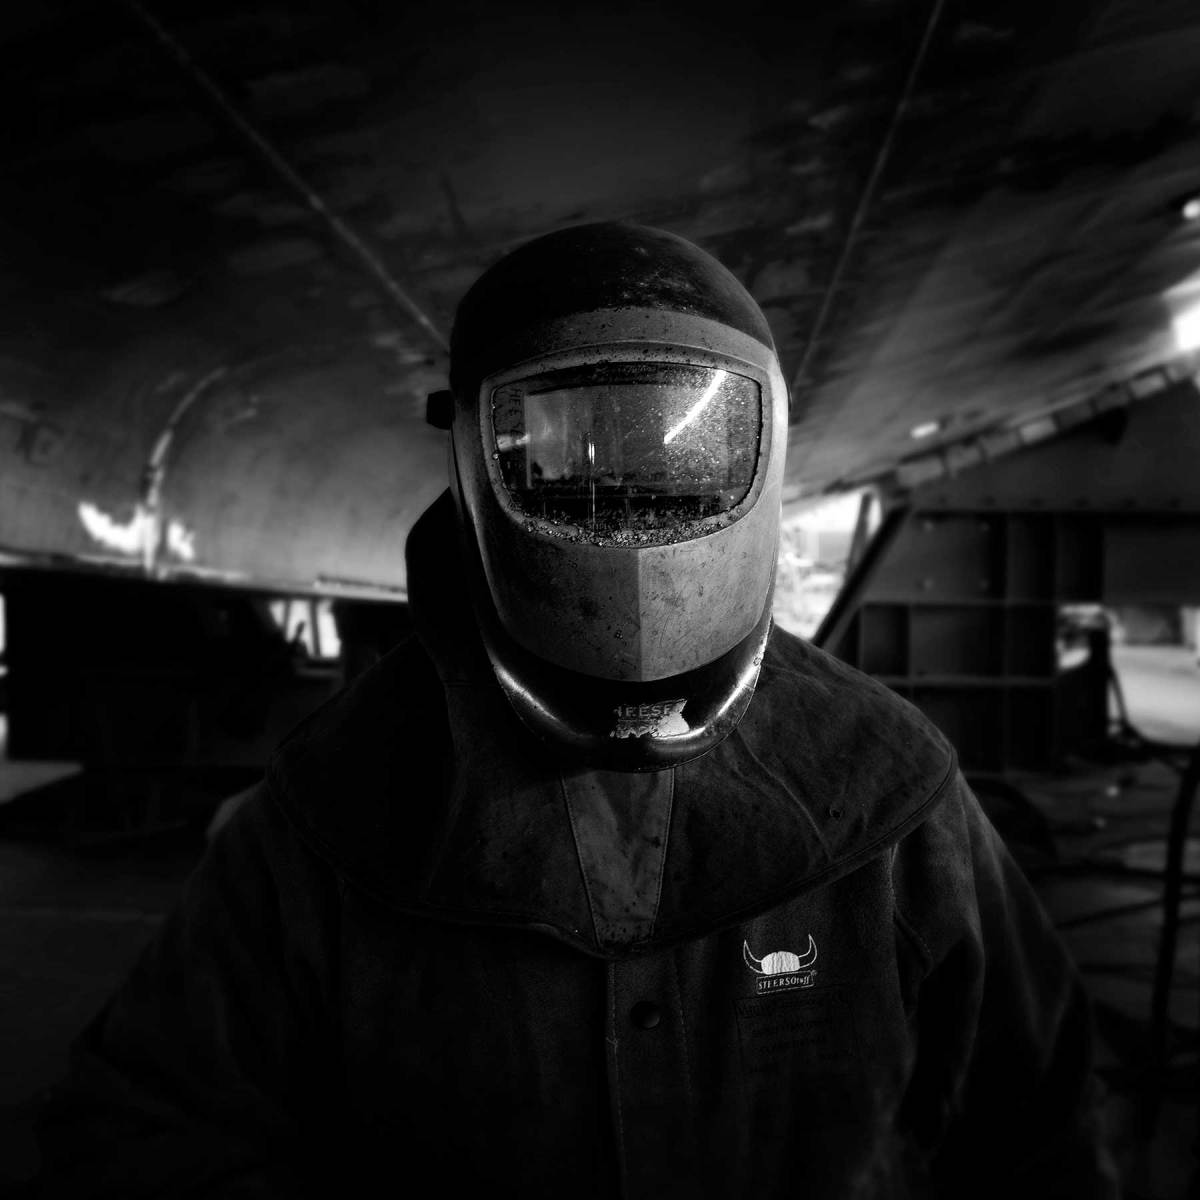 Welding requires a good eye, a steady hand, technical expertise and the ability to focus on the job through a darkened visor for hours at a time.